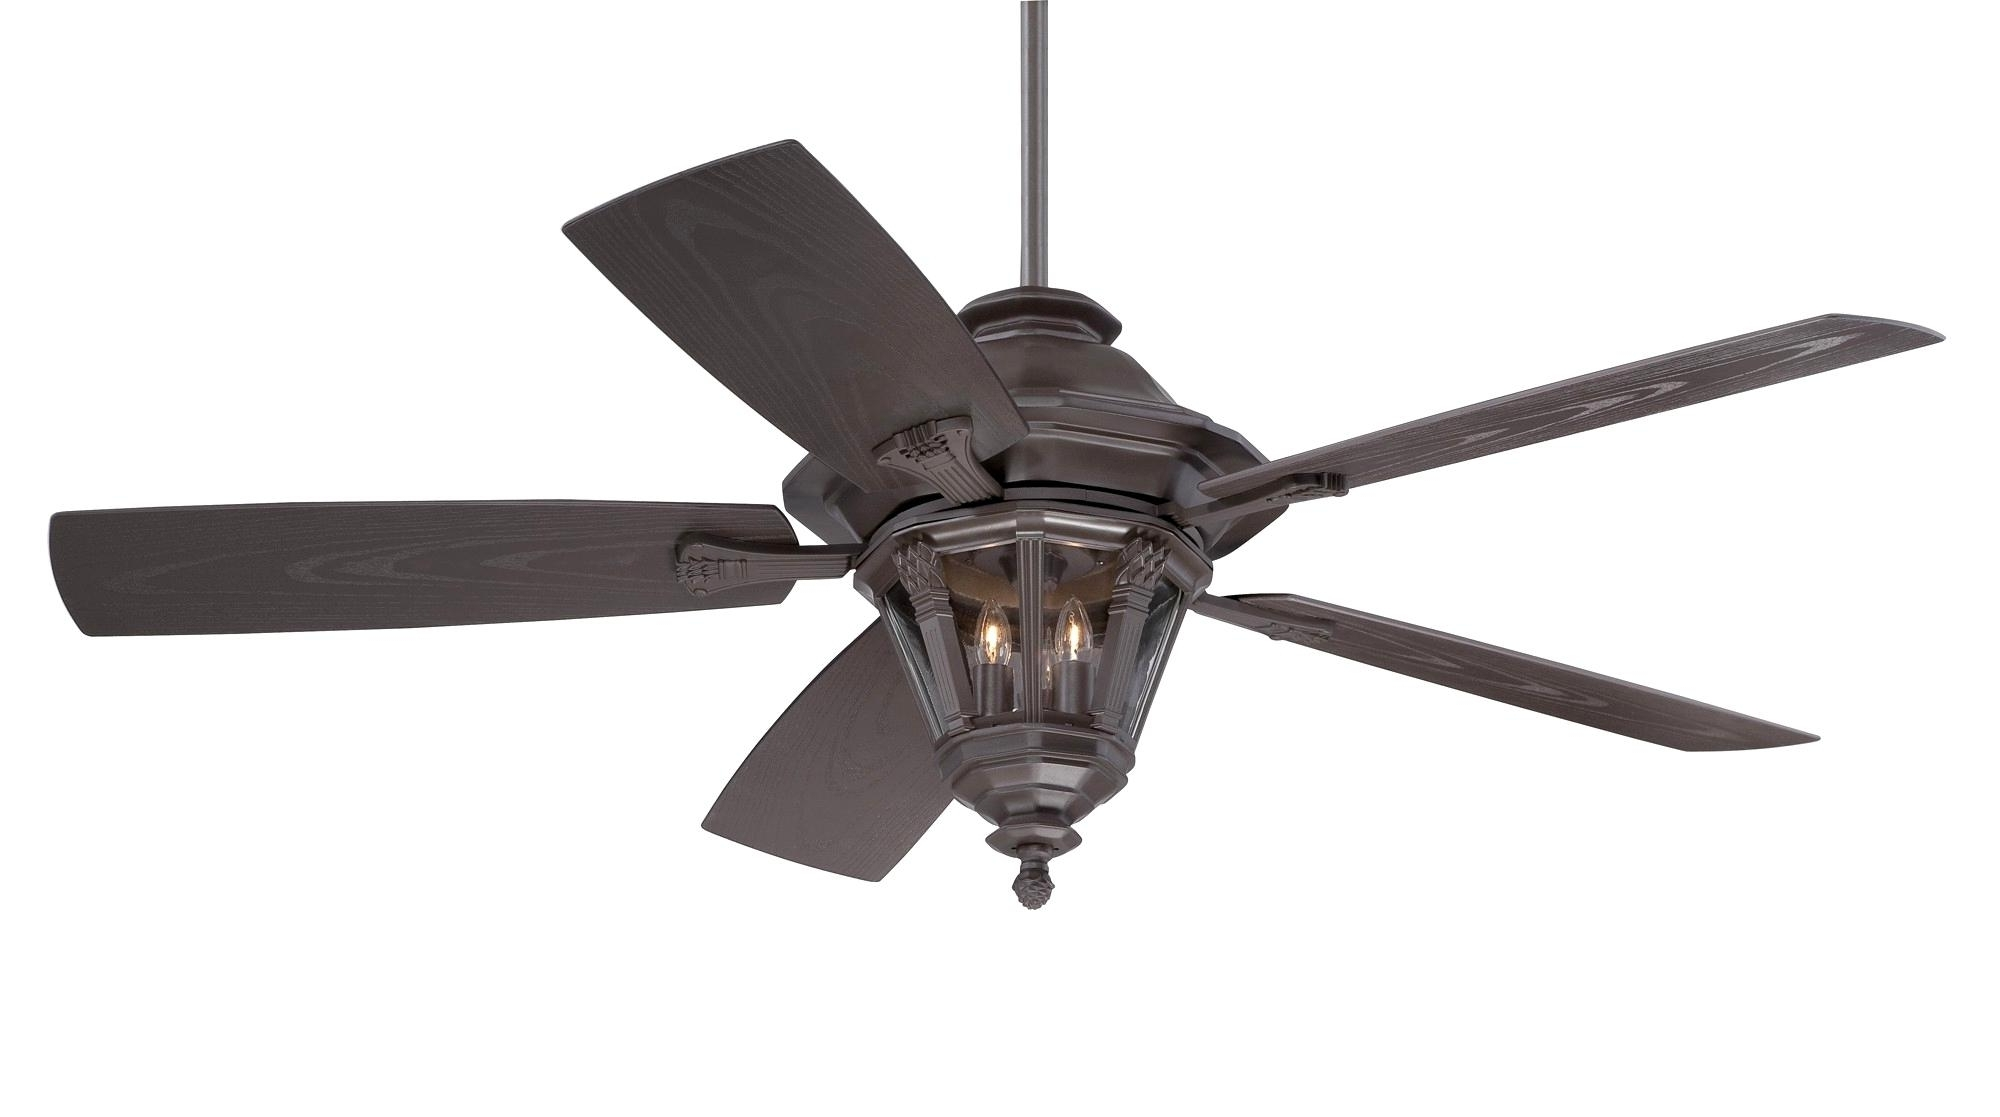 Current Unique Outdoor Ceiling Fans Intended For Improbable Outdoor Ceiling Fan Fans Unique Outdoor Ceiling Fans (View 2 of 20)